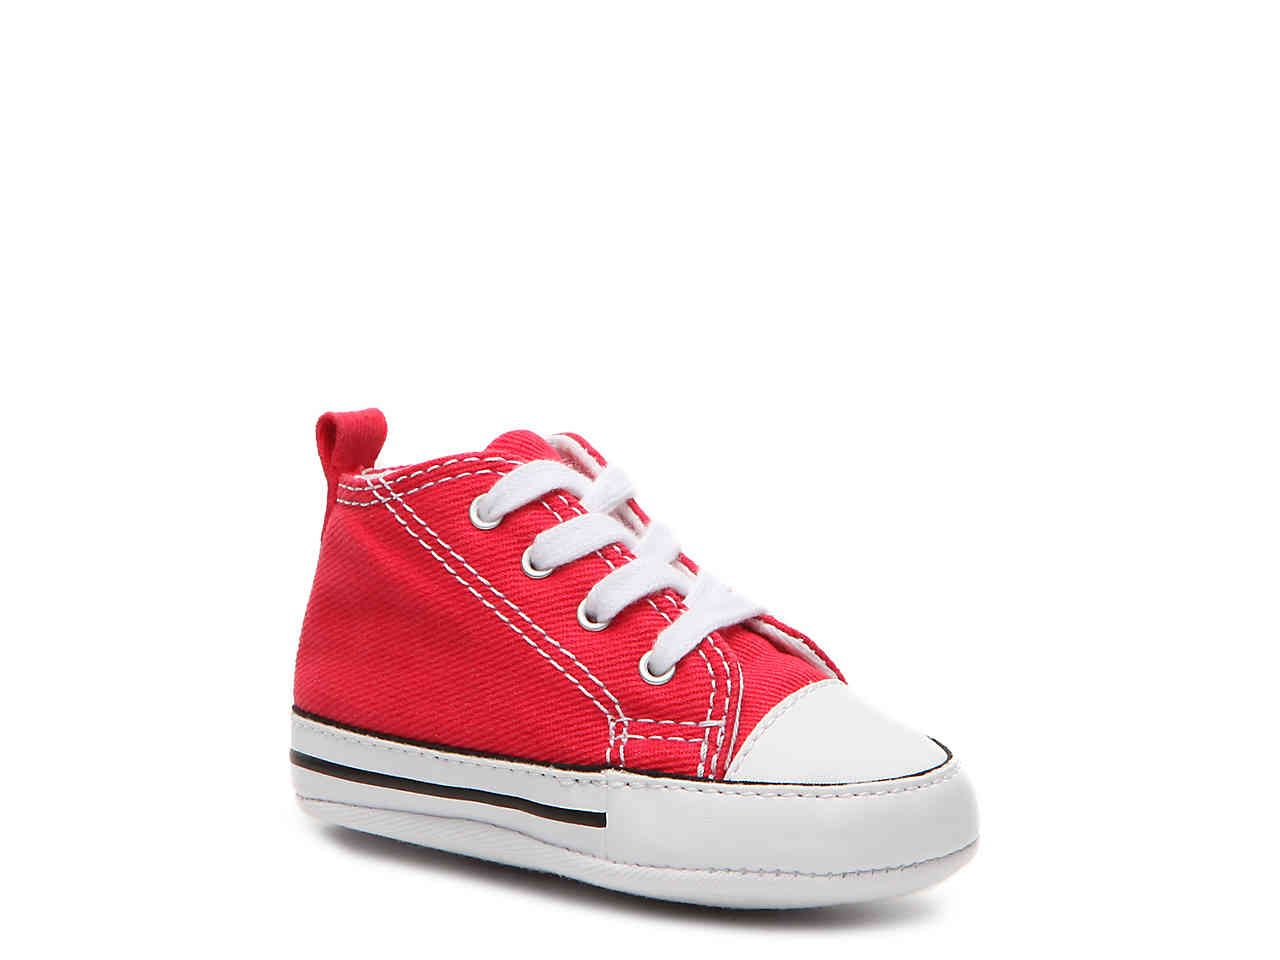 6959750af4352a Chuck Taylor All Star First Star Infant Crib Shoe